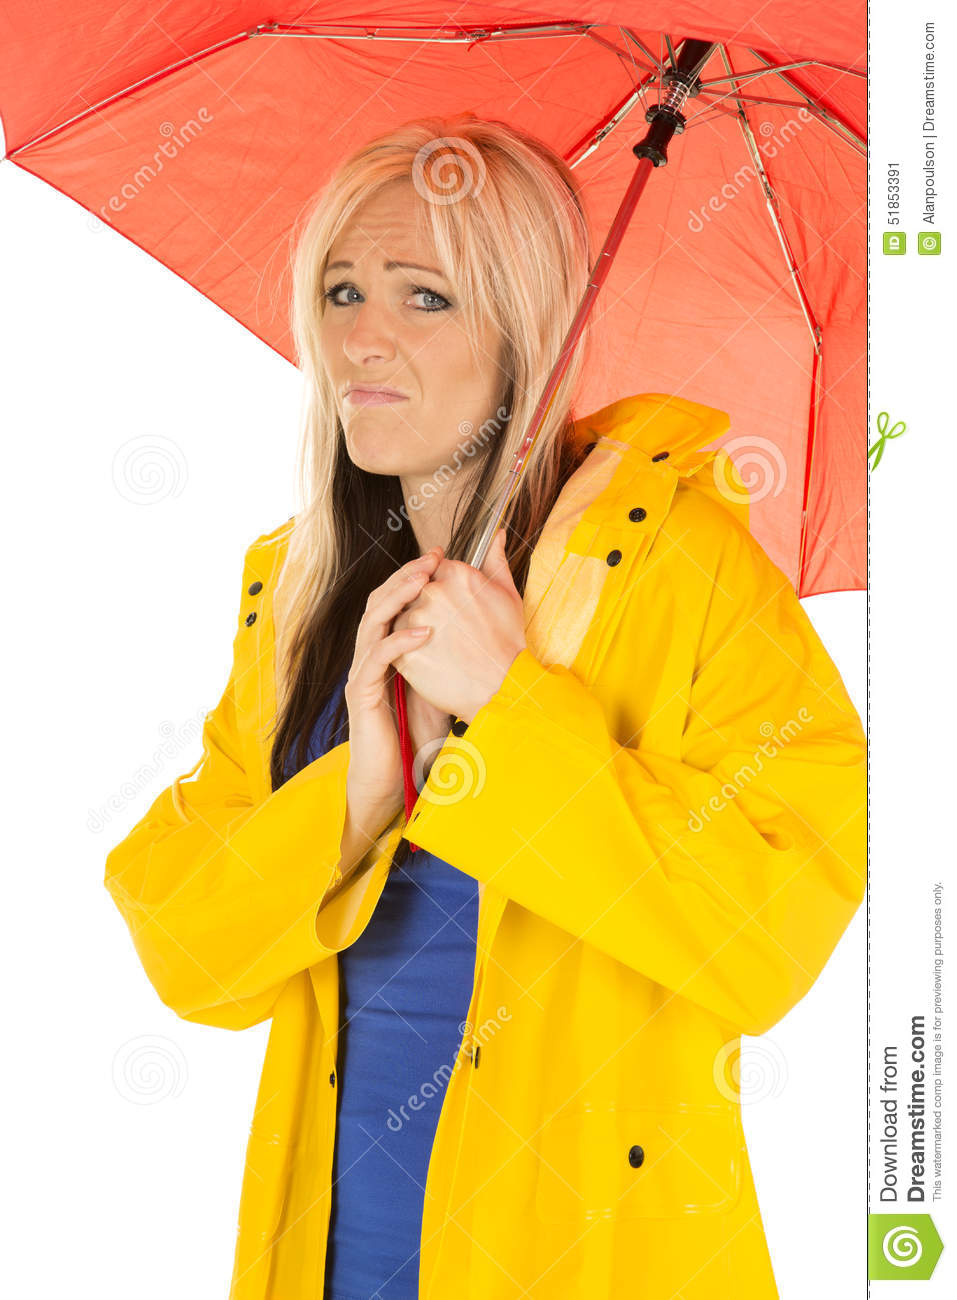 Woman in yellow rain coat under red umbrella sad